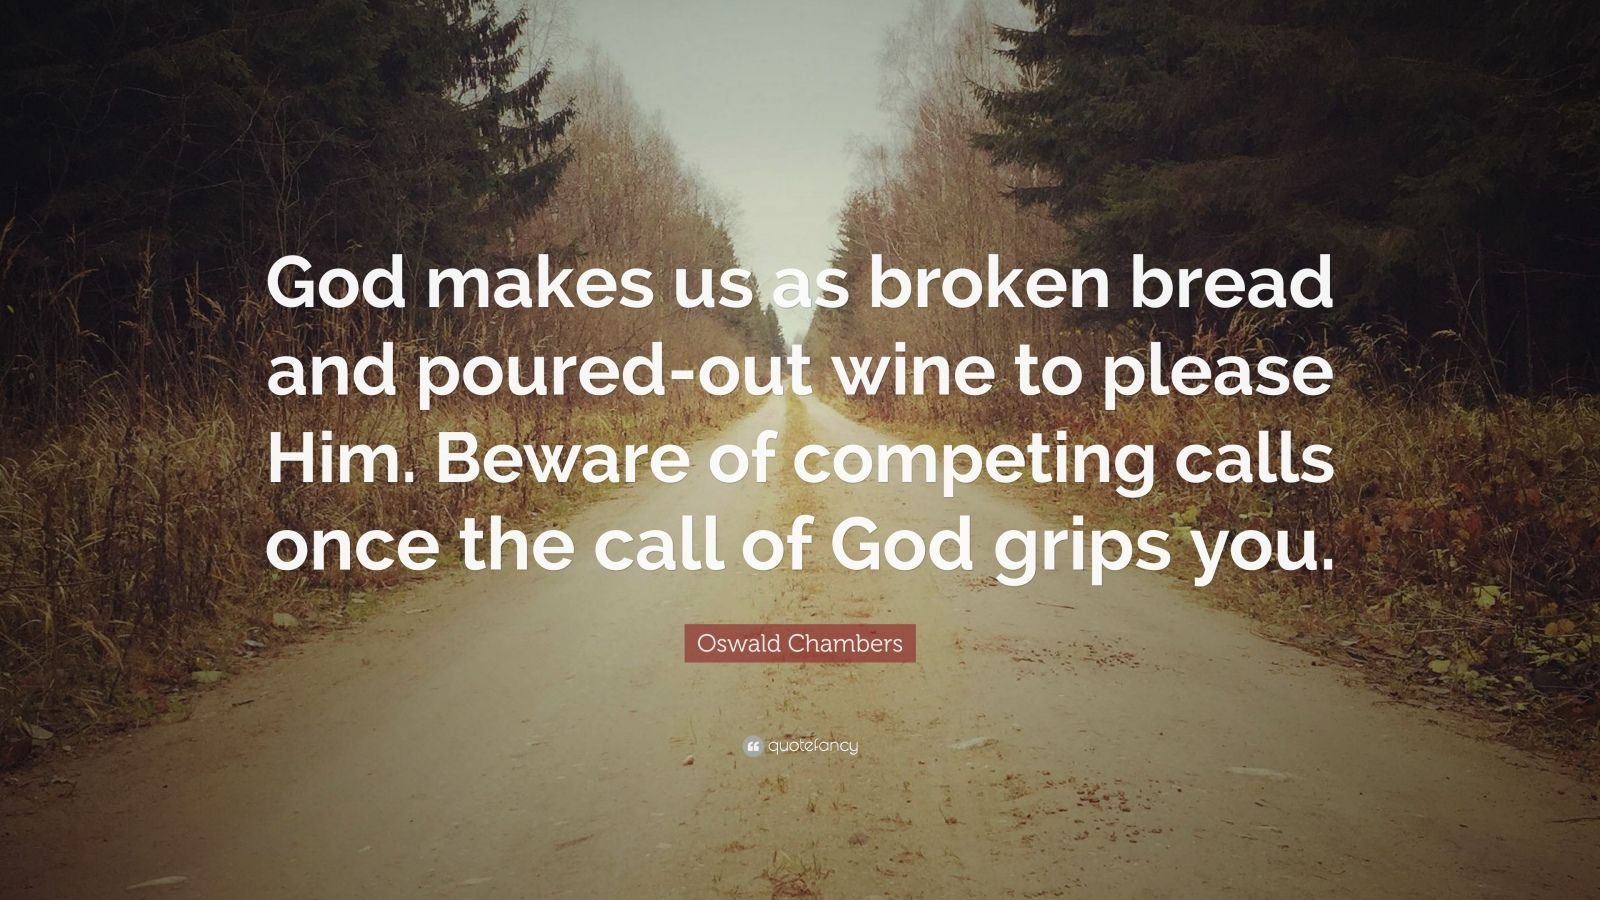 """Oswald Chambers Quote: """"God makes us as broken bread and poured-out wine to please Him. Beware of competing calls once the call of God grips you."""""""